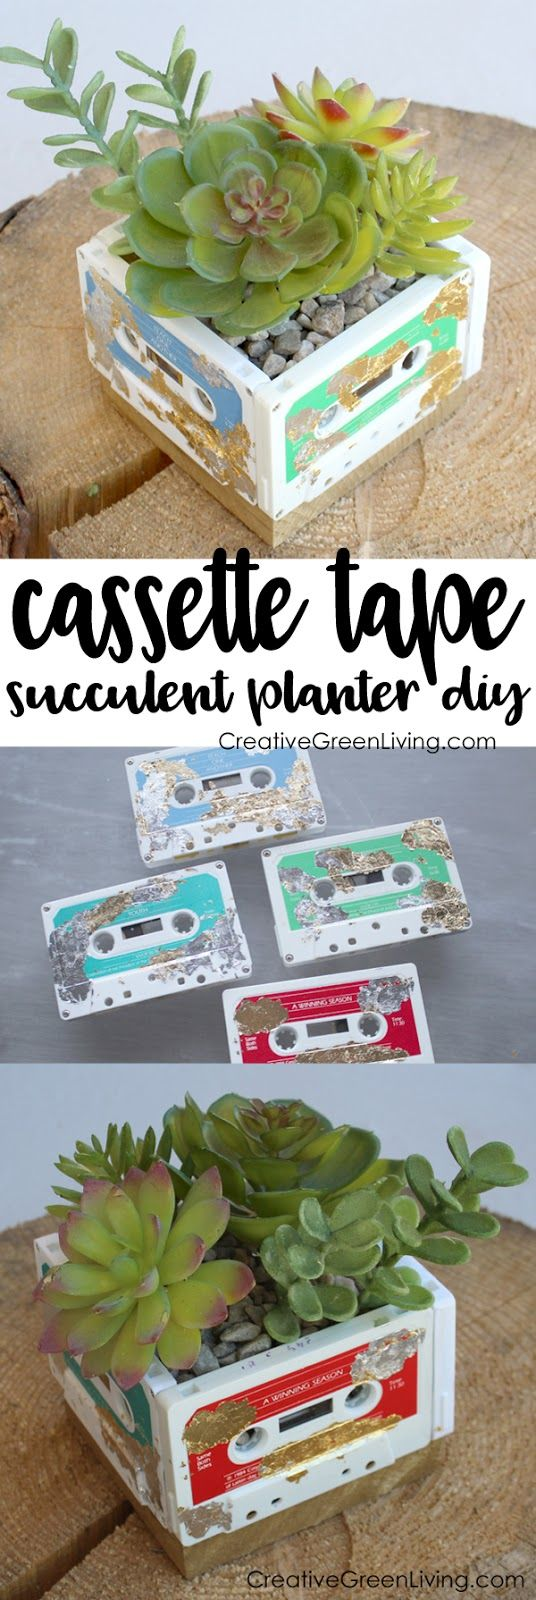 I love this cool DIY succulent centerpiece craft made with cassette tapes. This is such a great way to upcycle old cassettes into a fun container garden planter.